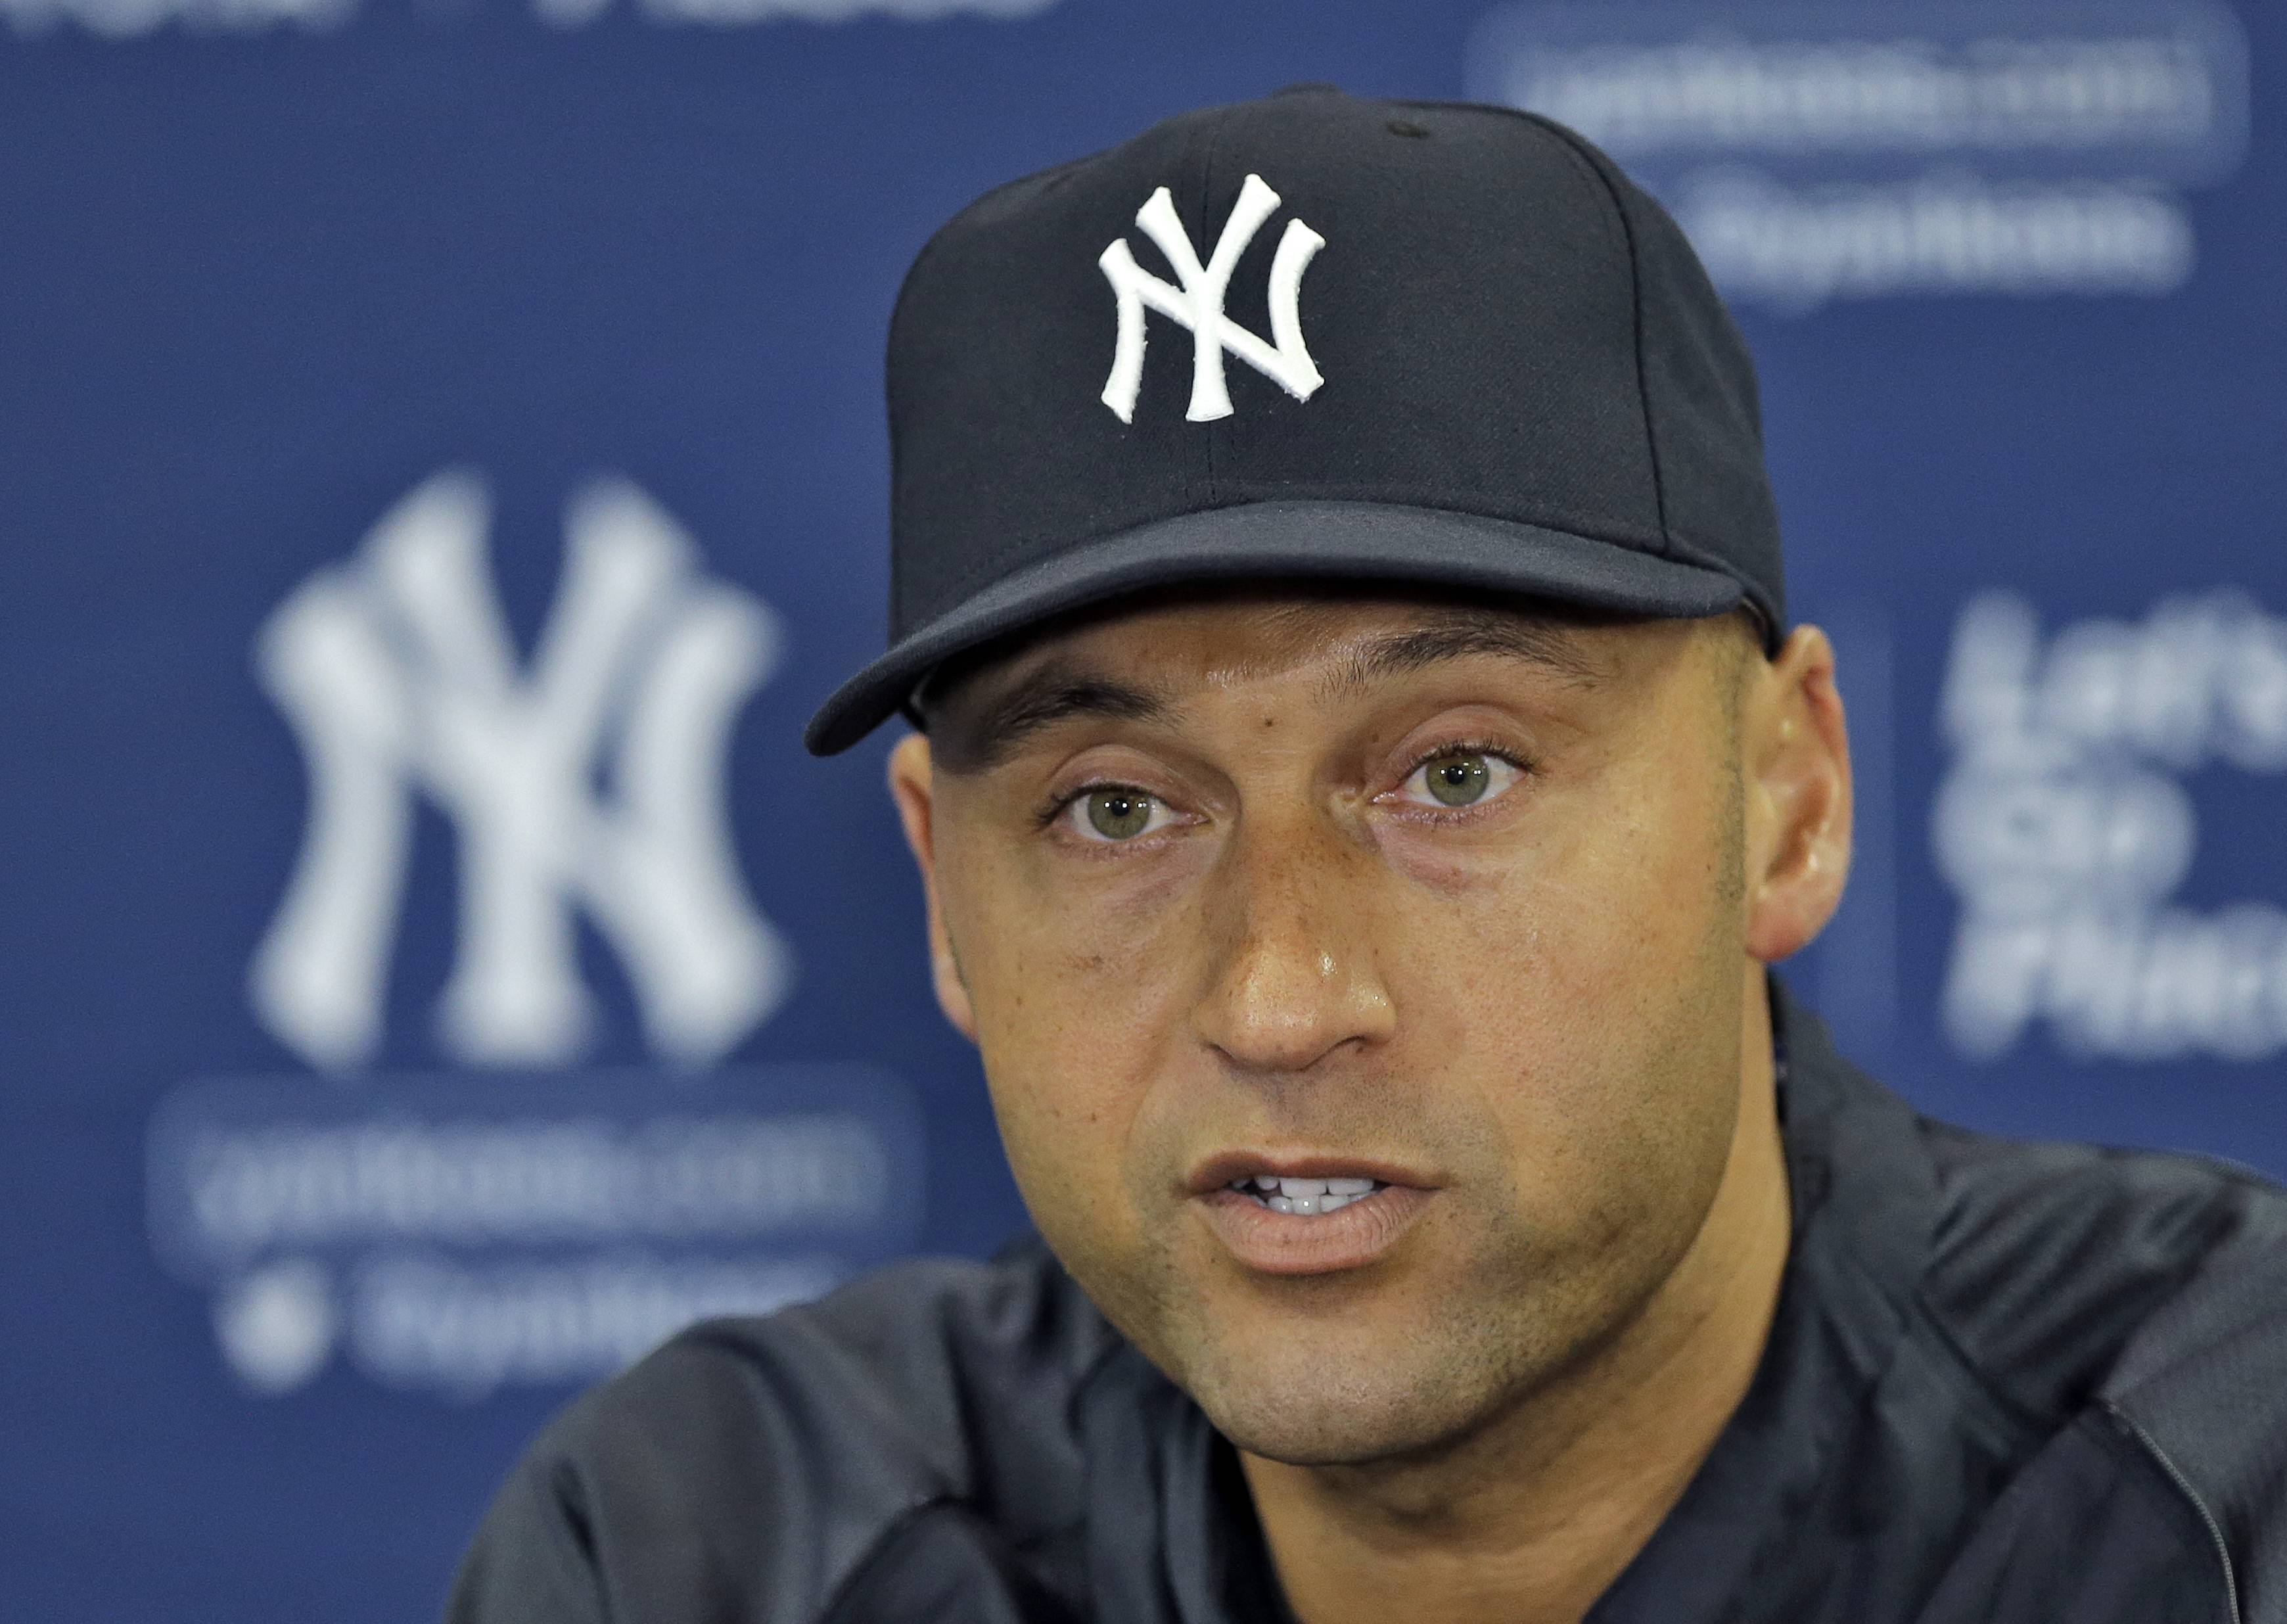 As Derek Jeter winds down his baseball life, part of his attention already is turning to his future business career.